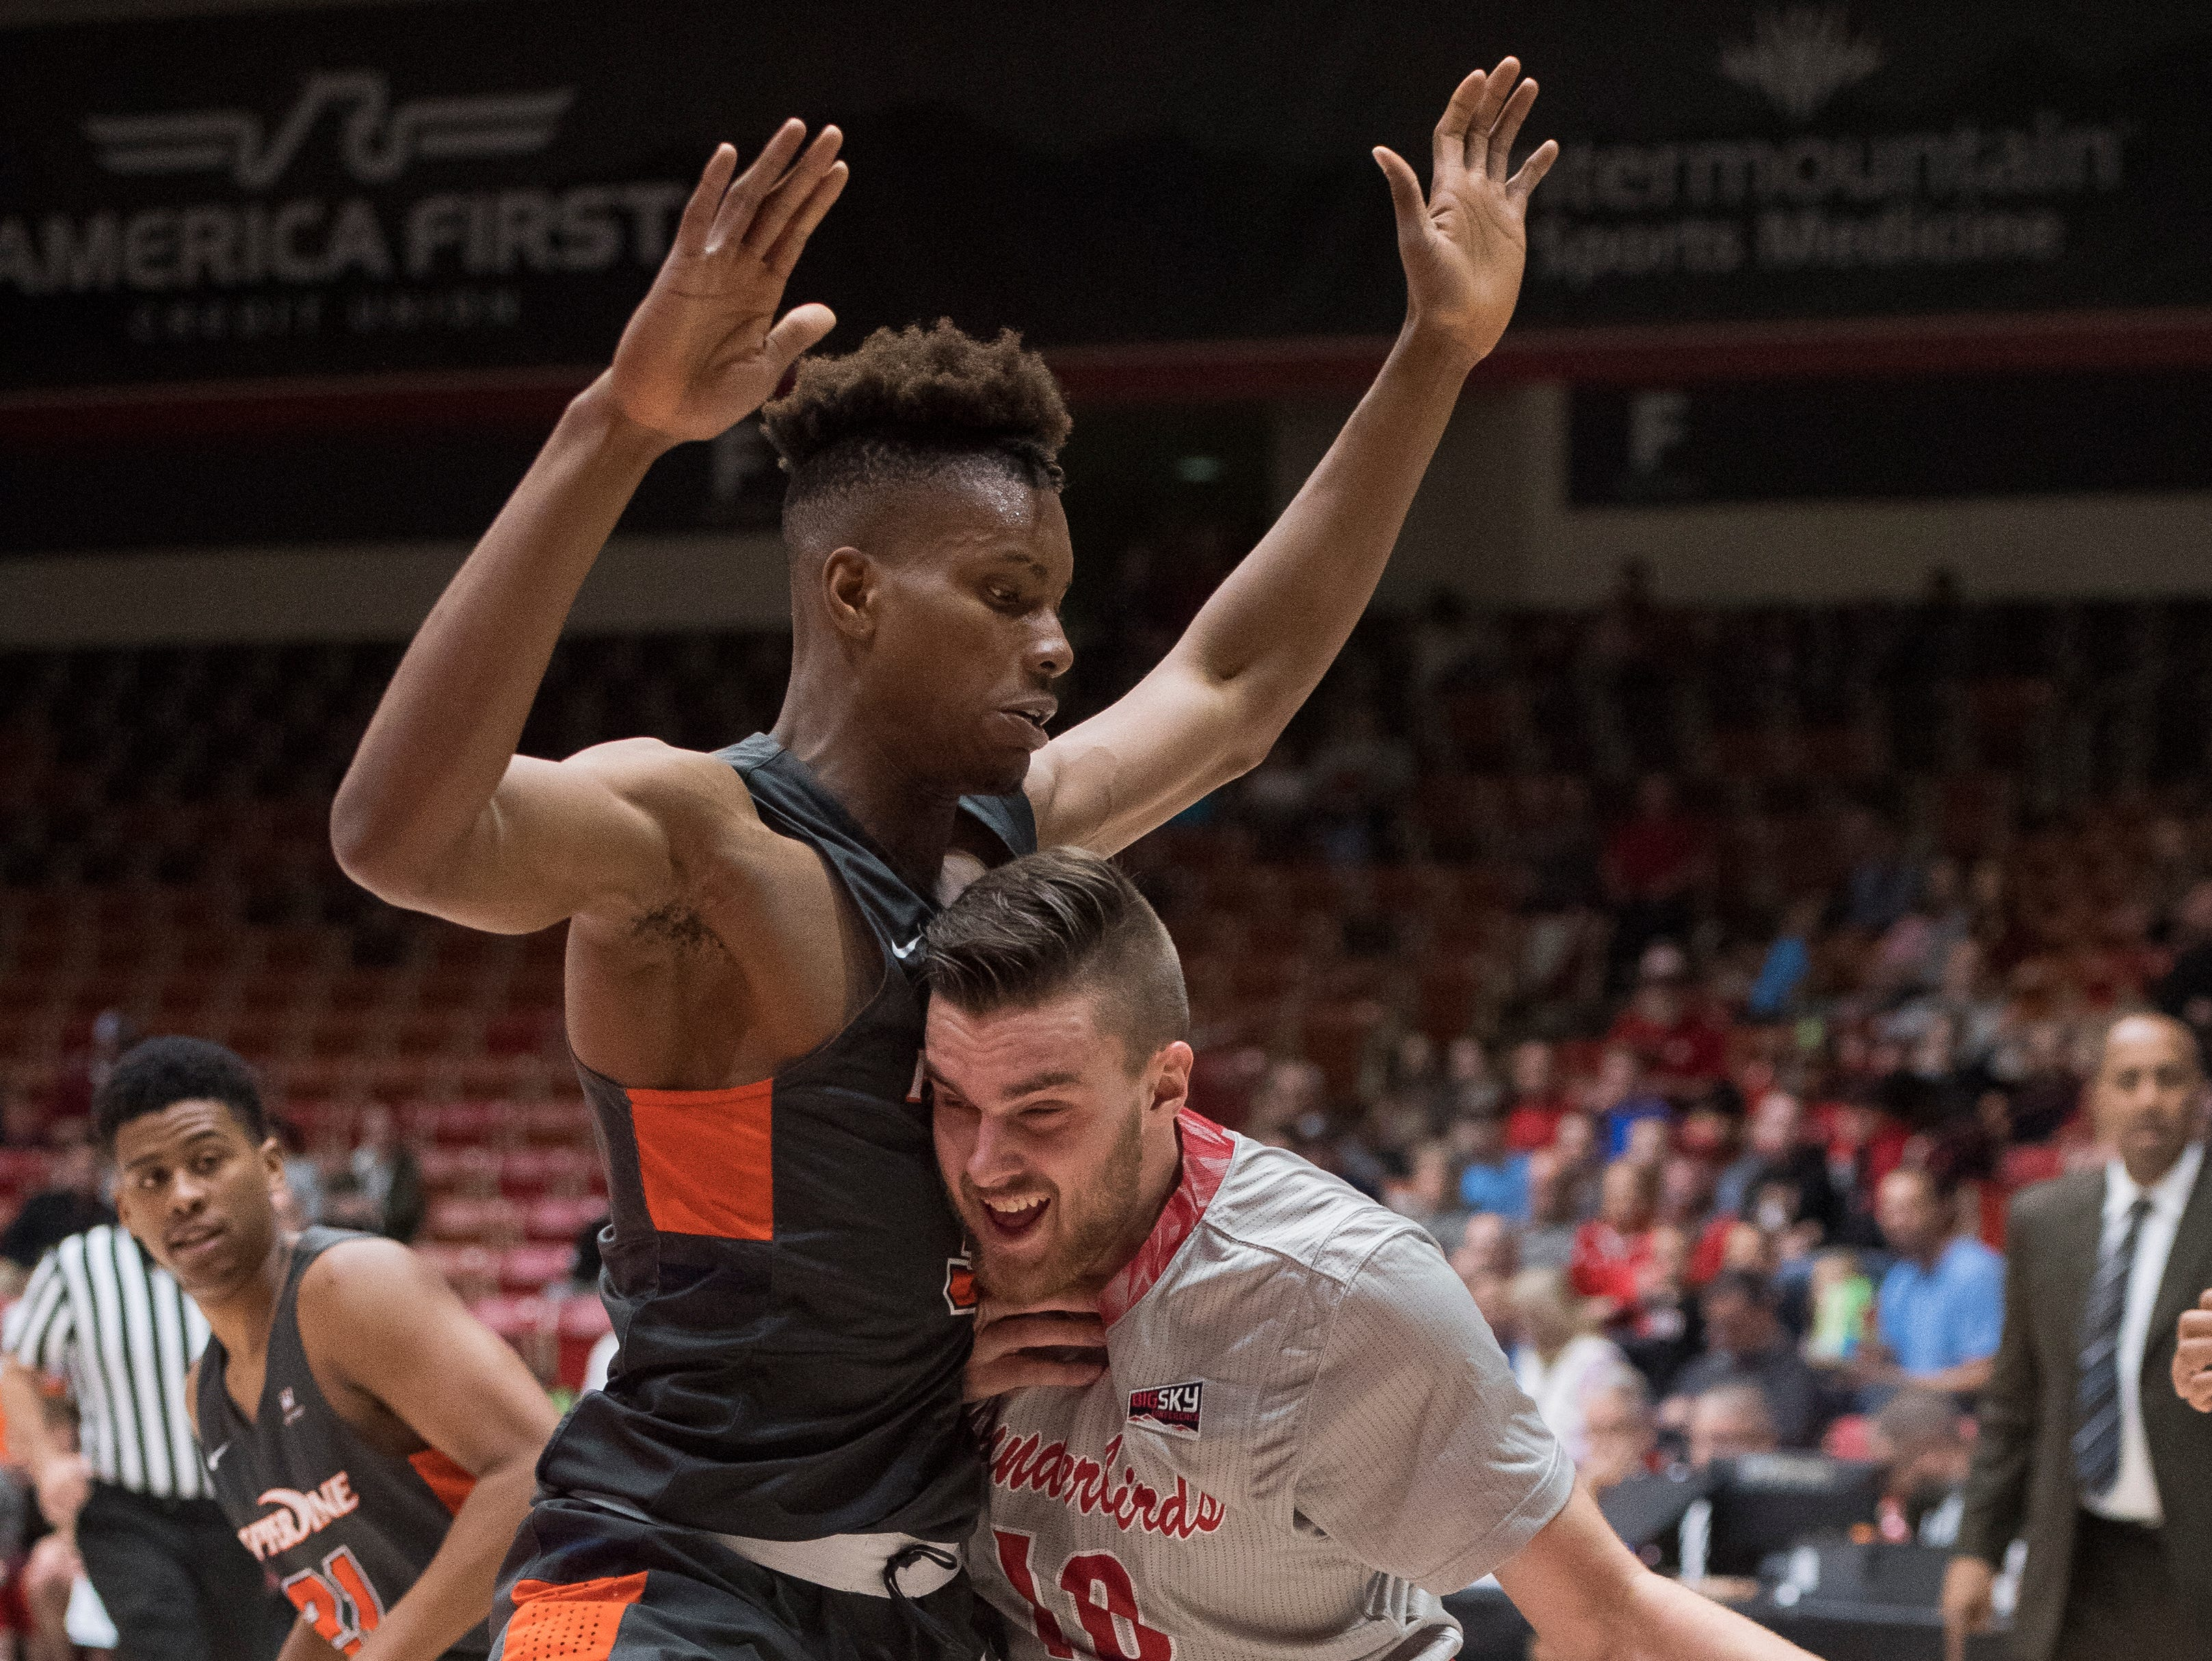 Southern Utah University junior Jacob Calloway (10) fights his way toward the basket during the game against Pepperdine University in the America First Event Center Saturday, December 15, 2018. SUU won in overtime, 78-69.